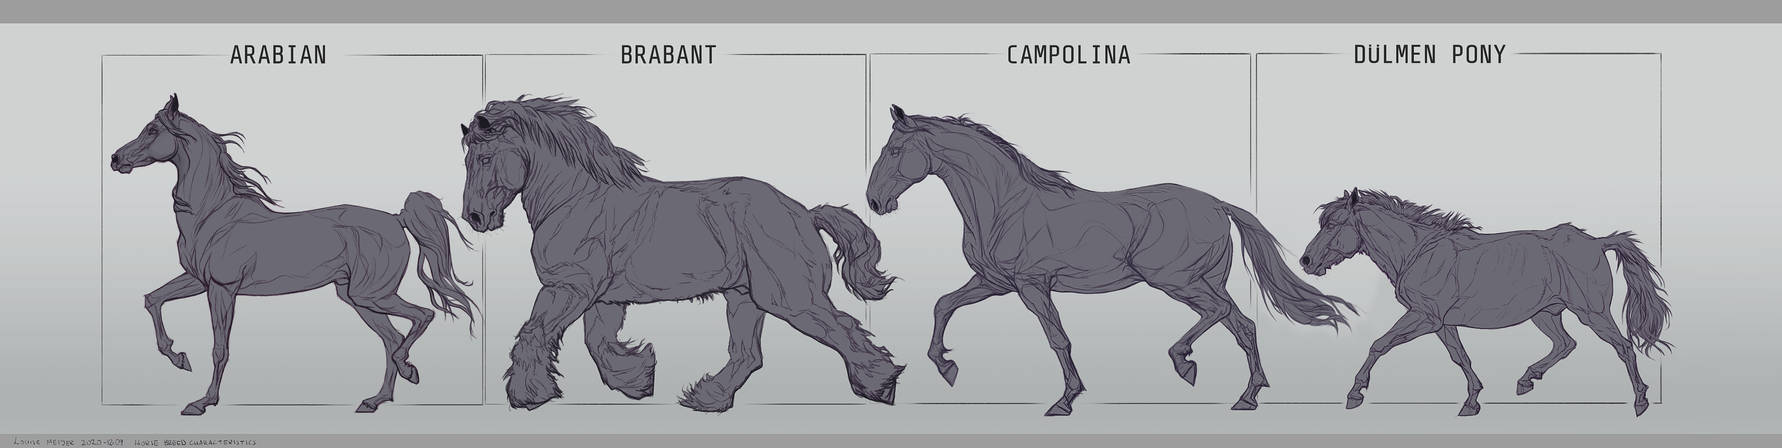 Horse breeds A, B and C